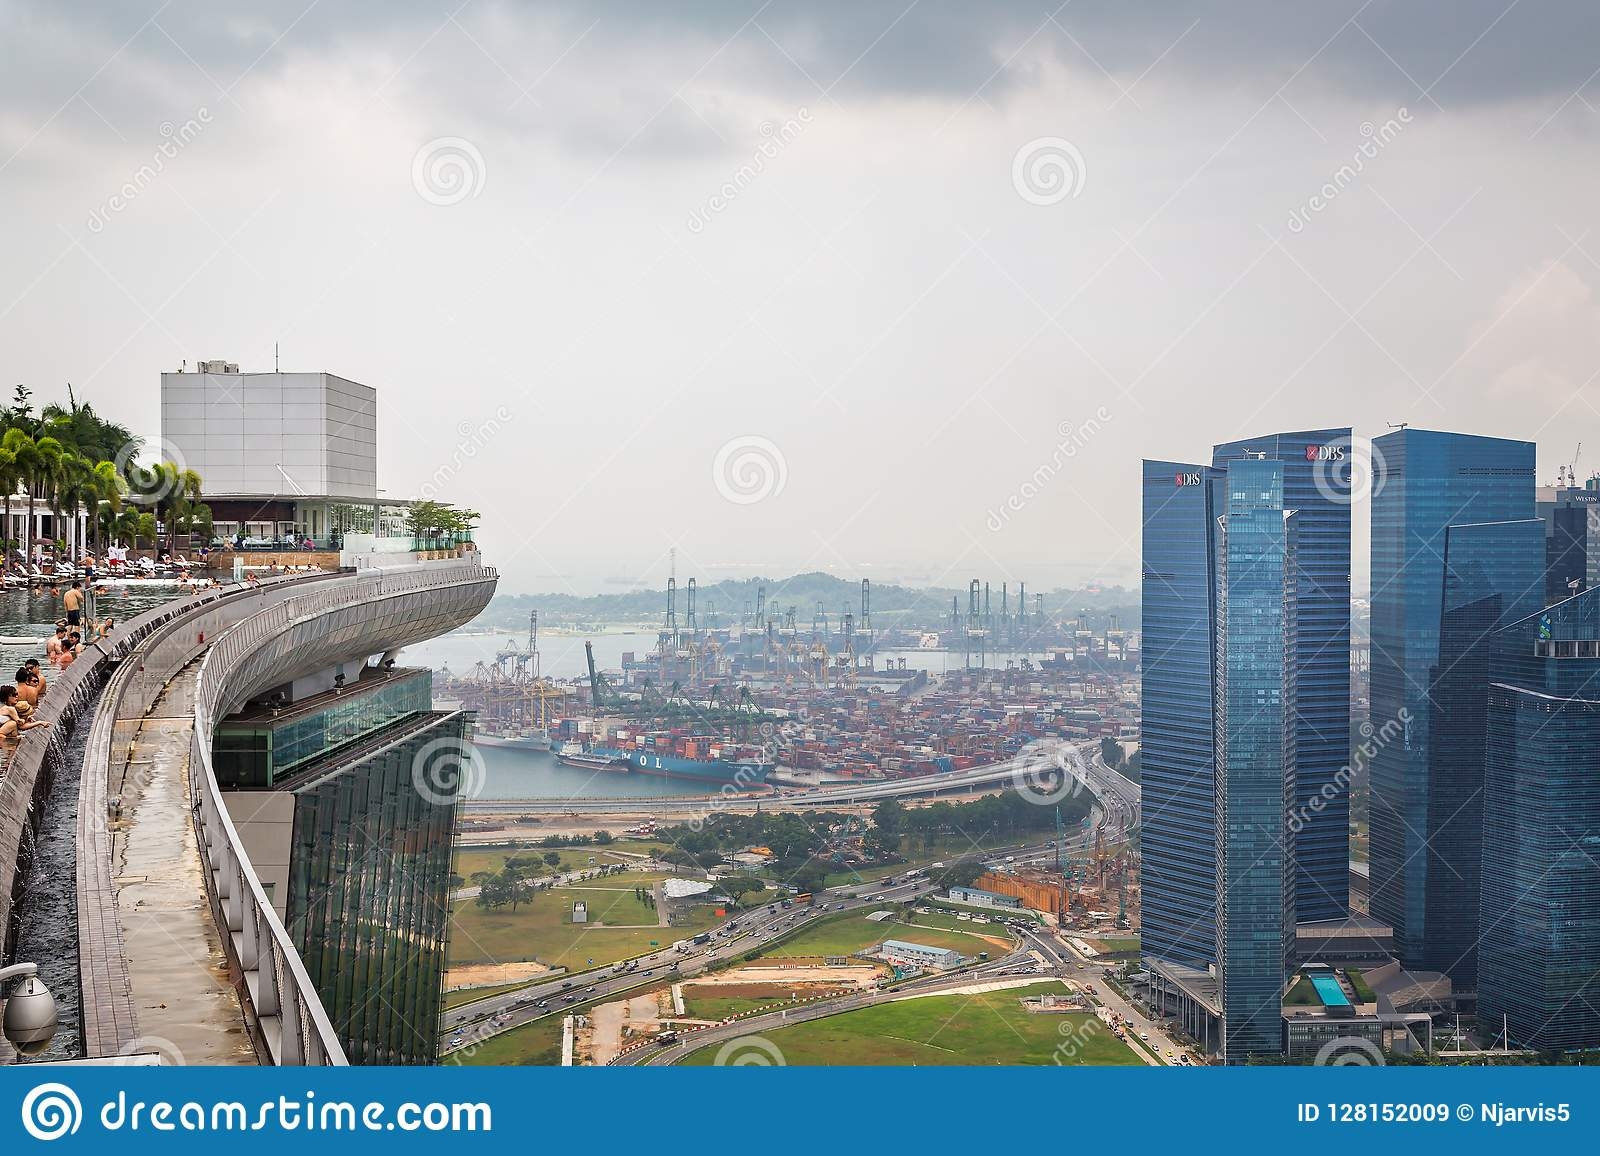 View Of Infinity Pool At Top Of Marina Bay Sands Hotel With Port